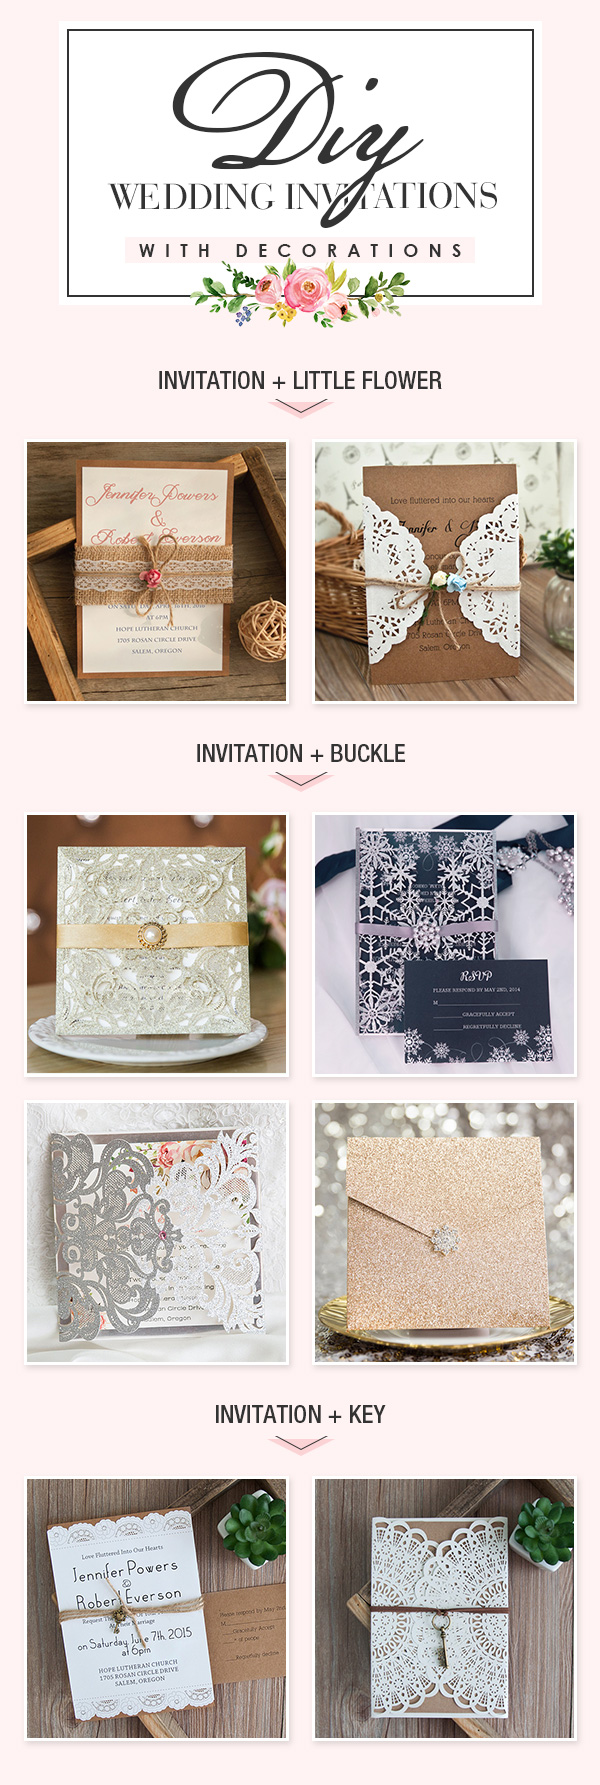 DIY Wedding Invitations with Decorations